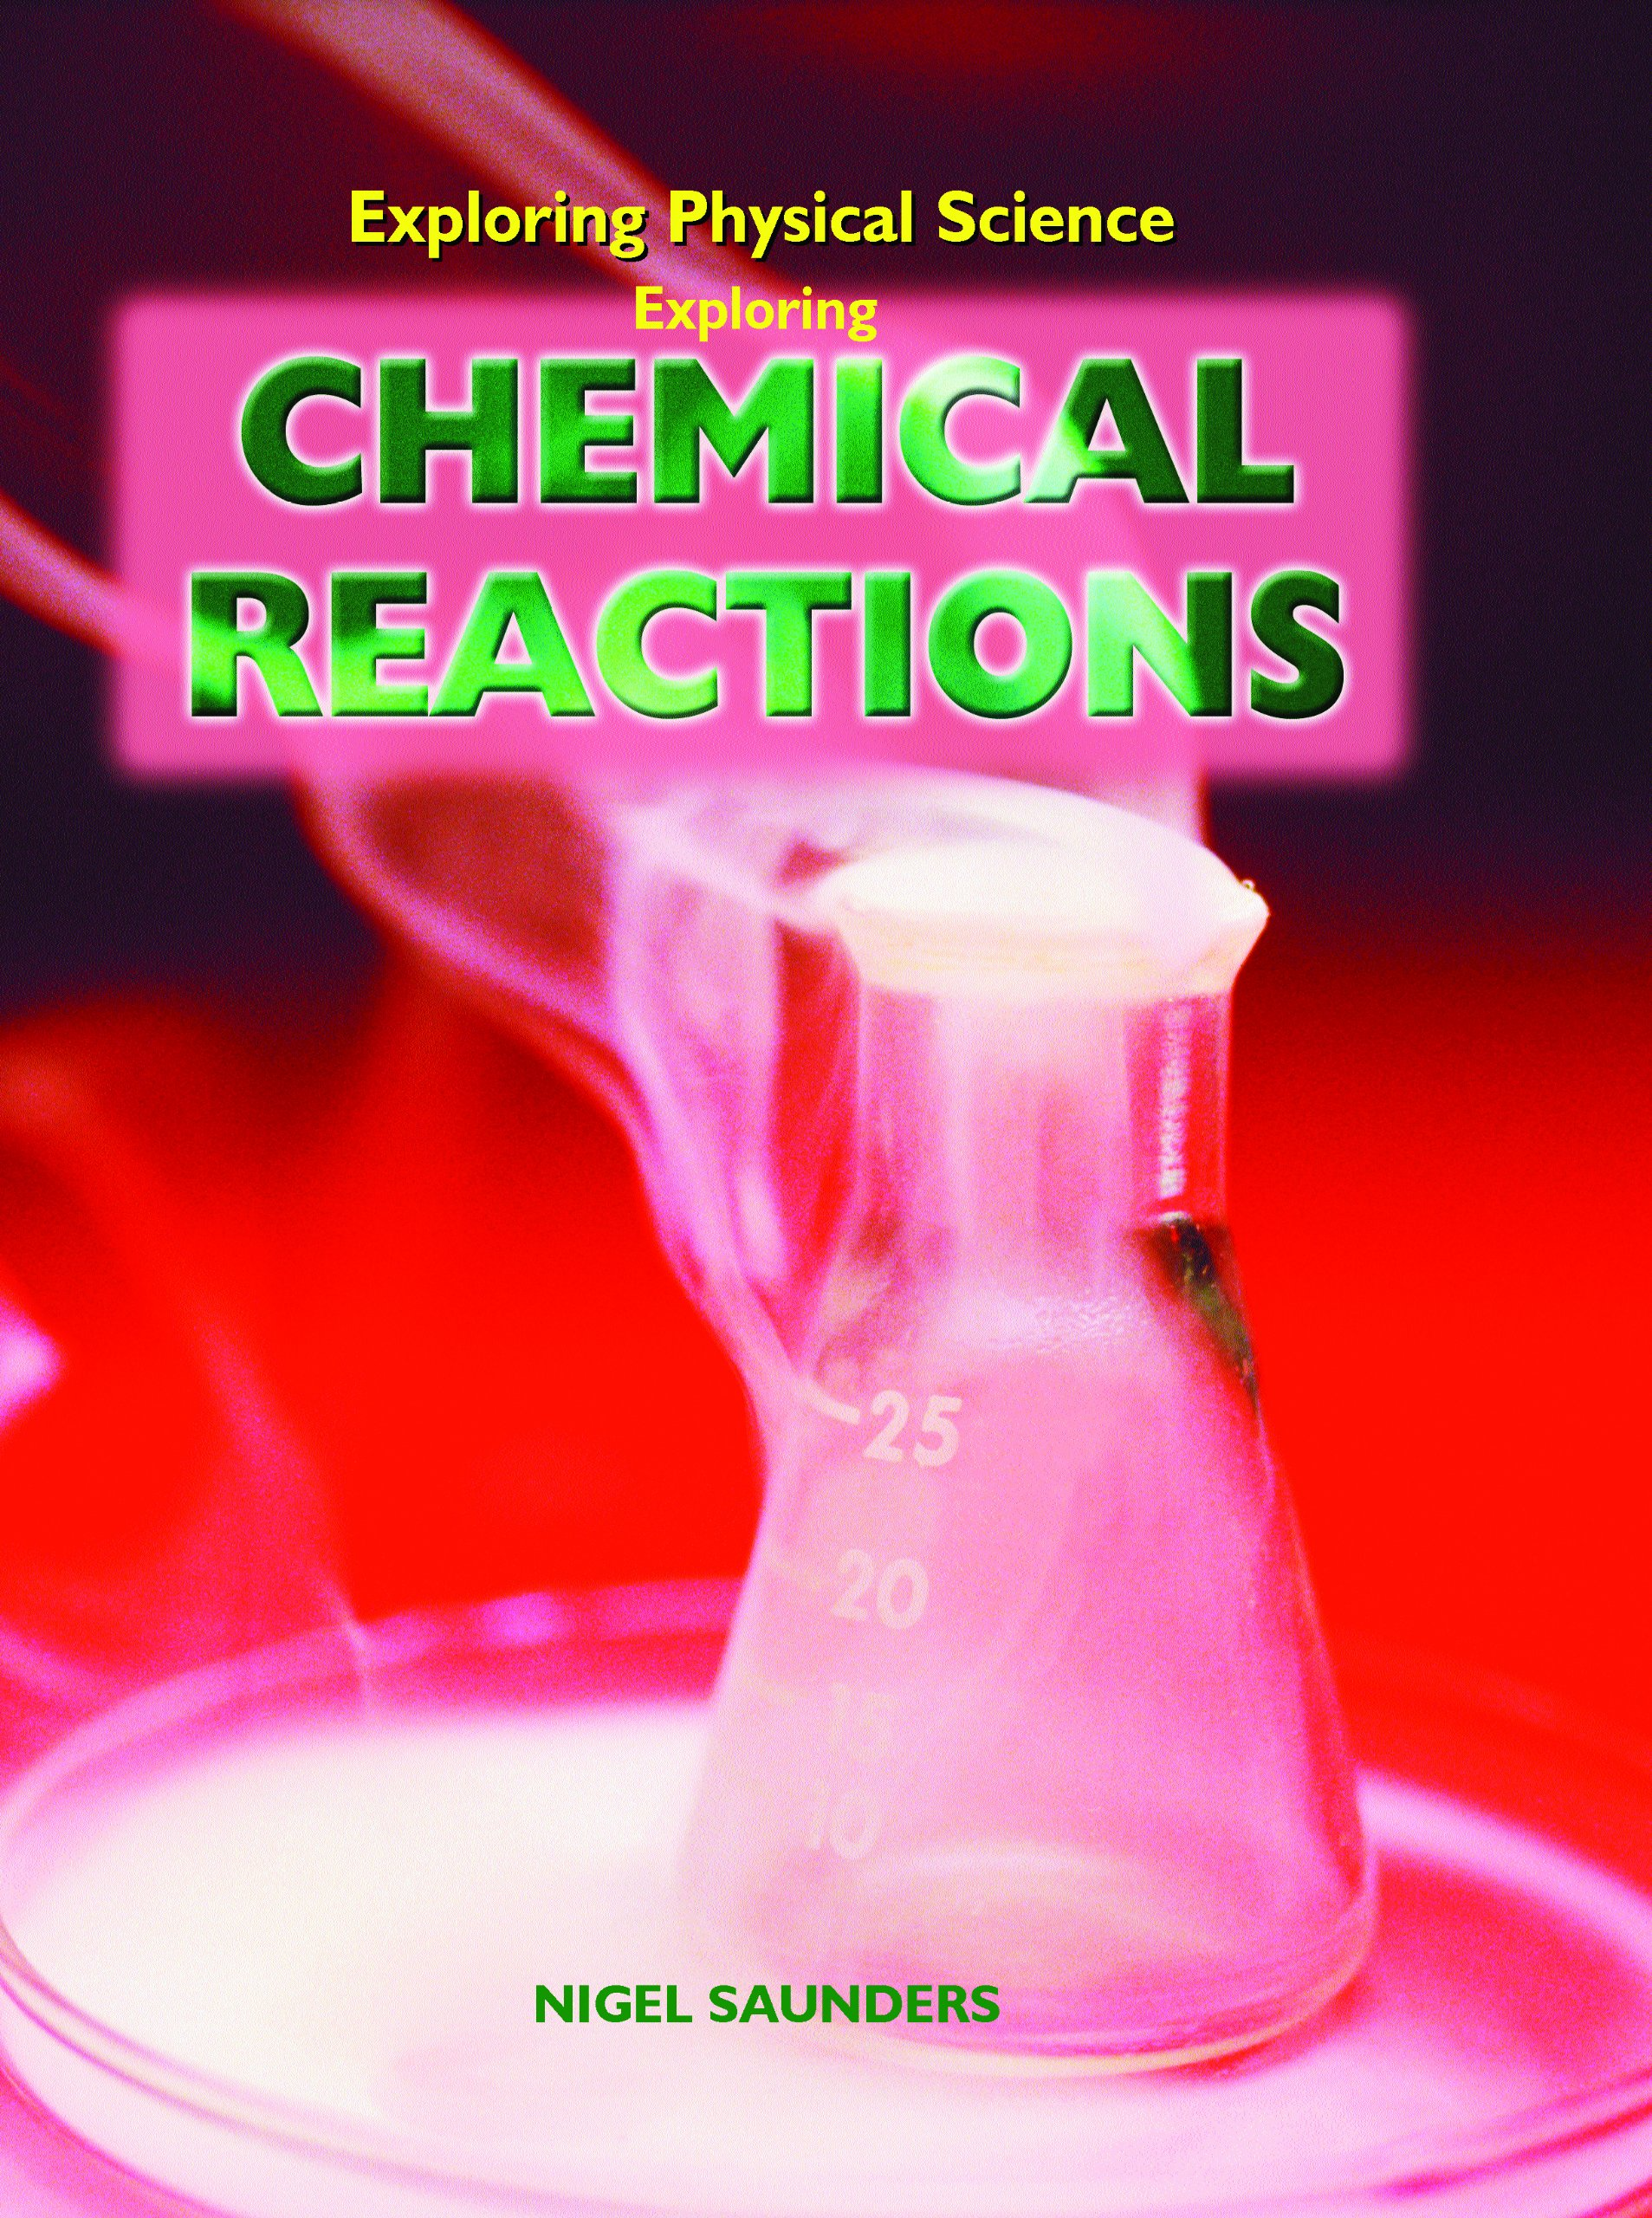 Download Exploring Chemical Reactions (Exploring Physical Science) PDF